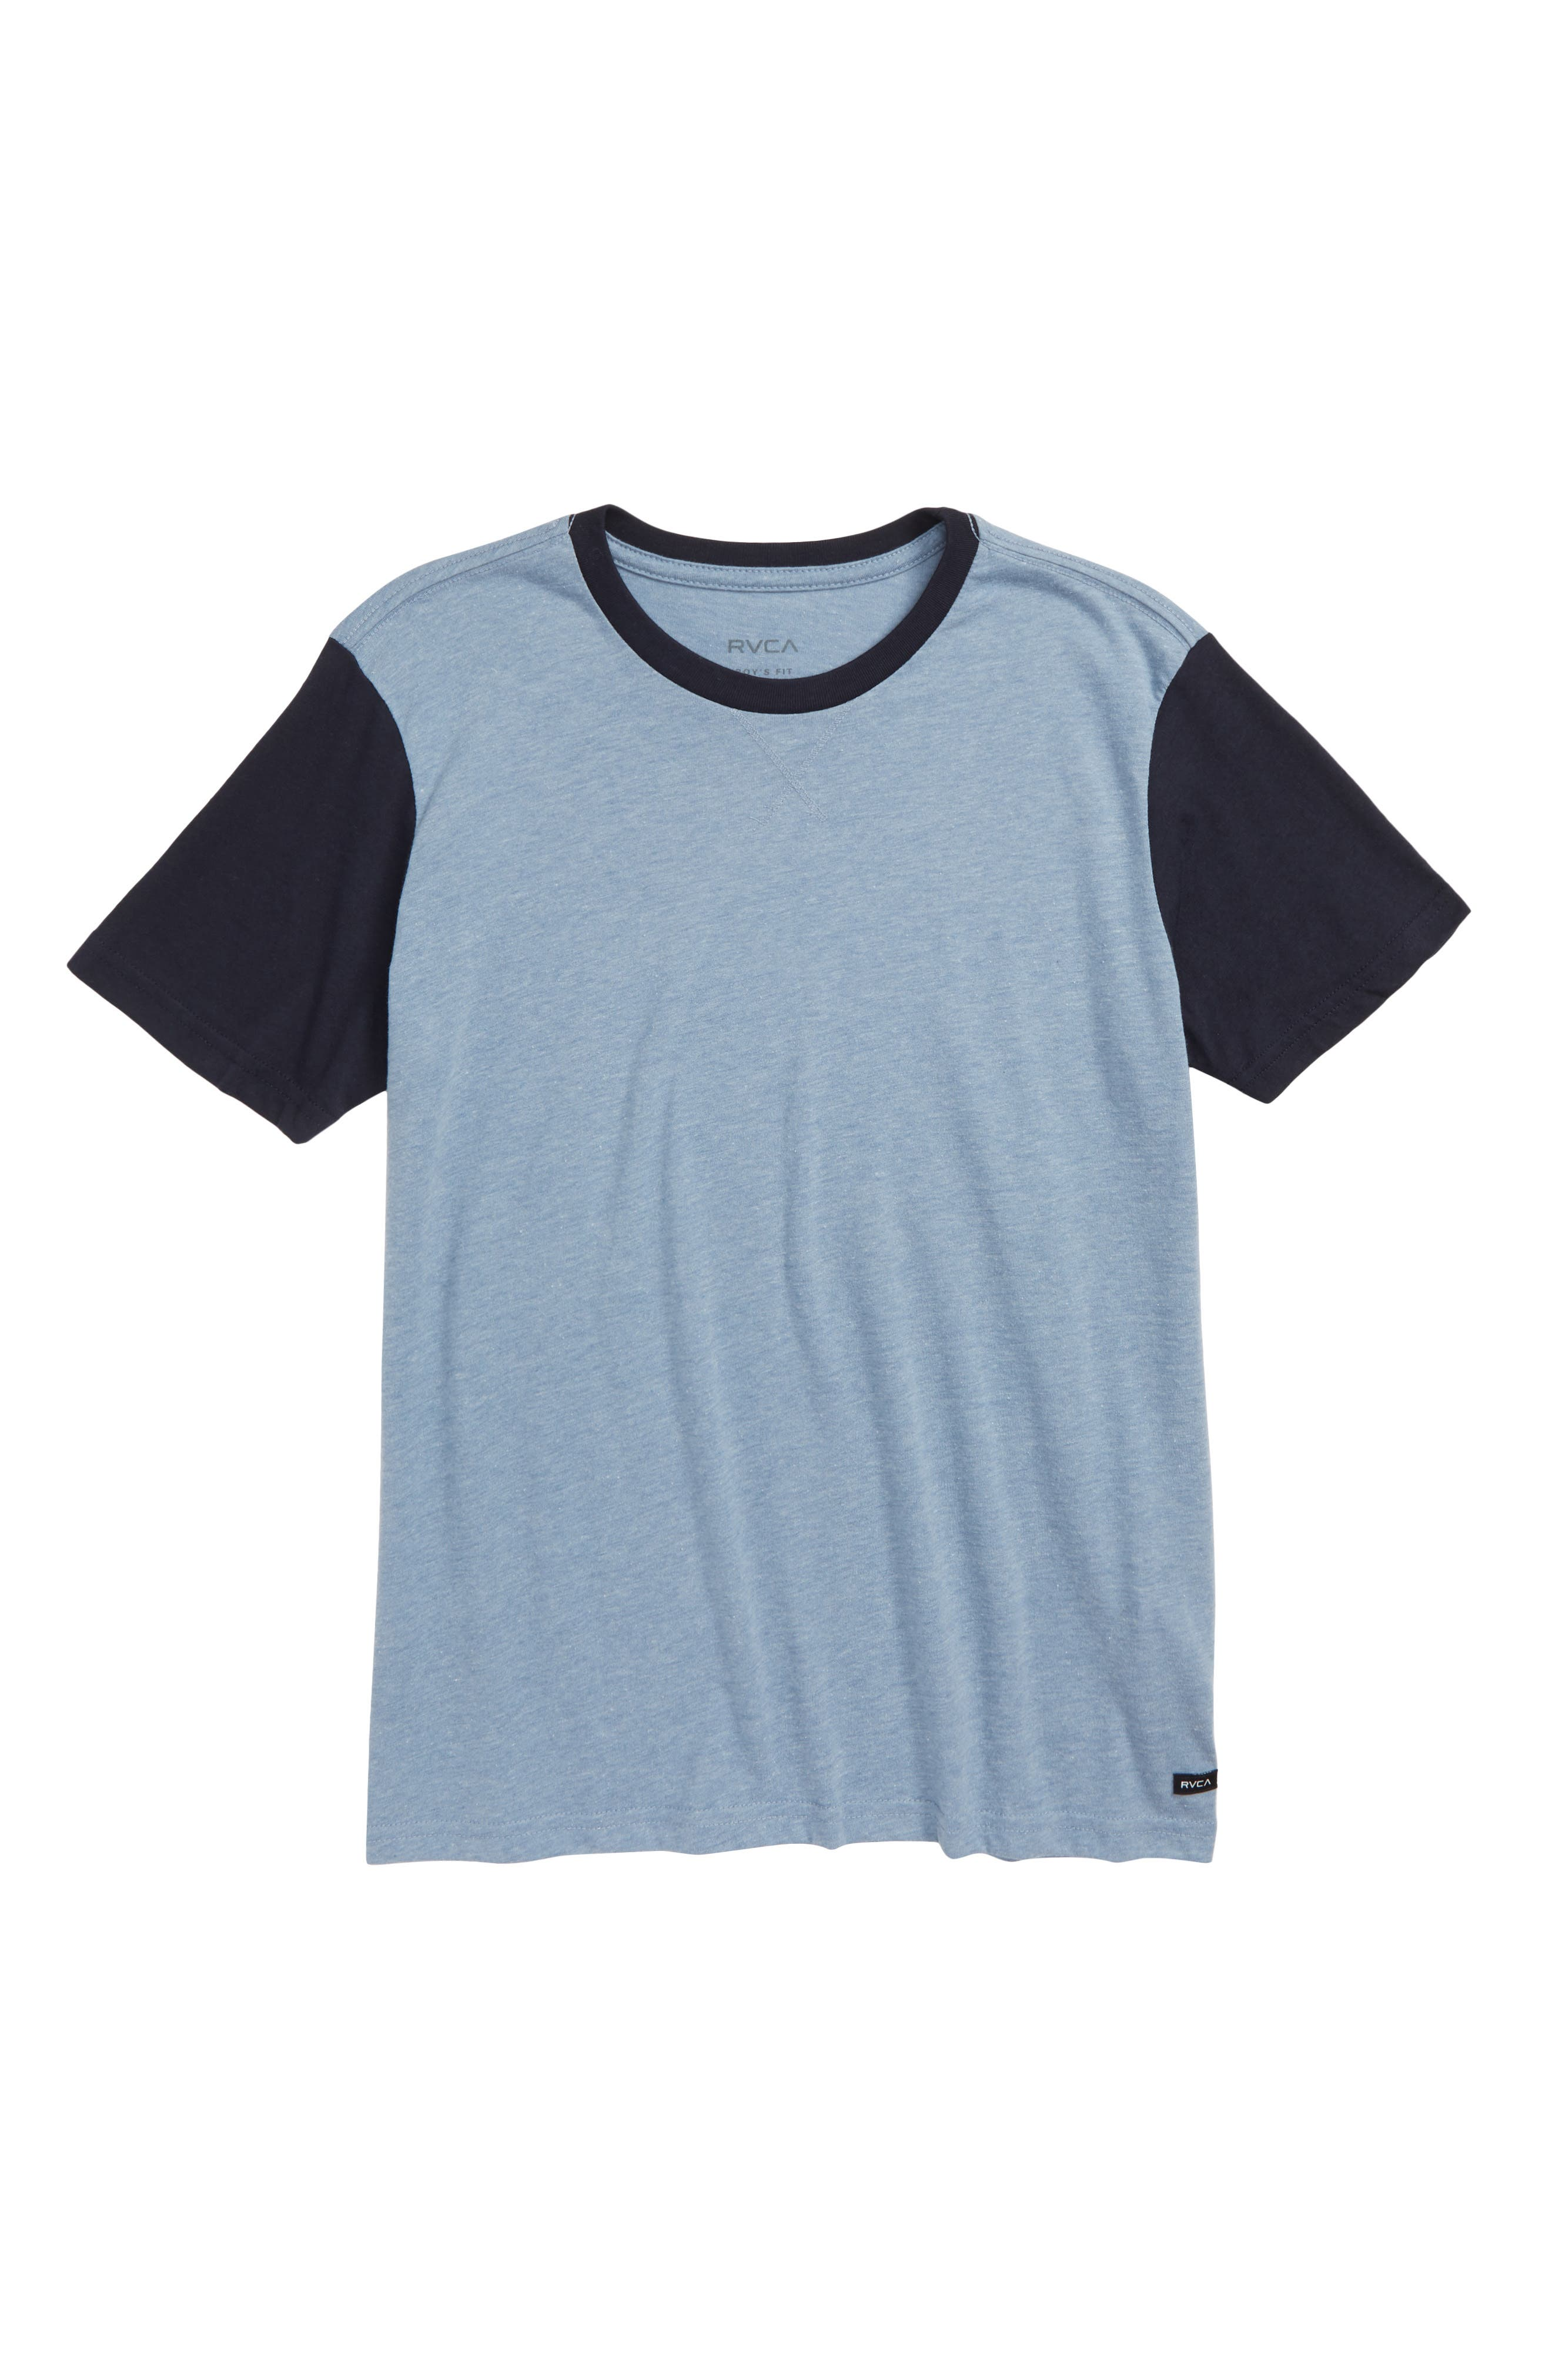 Pick Up II T-Shirt,                         Main,                         color, BLUE